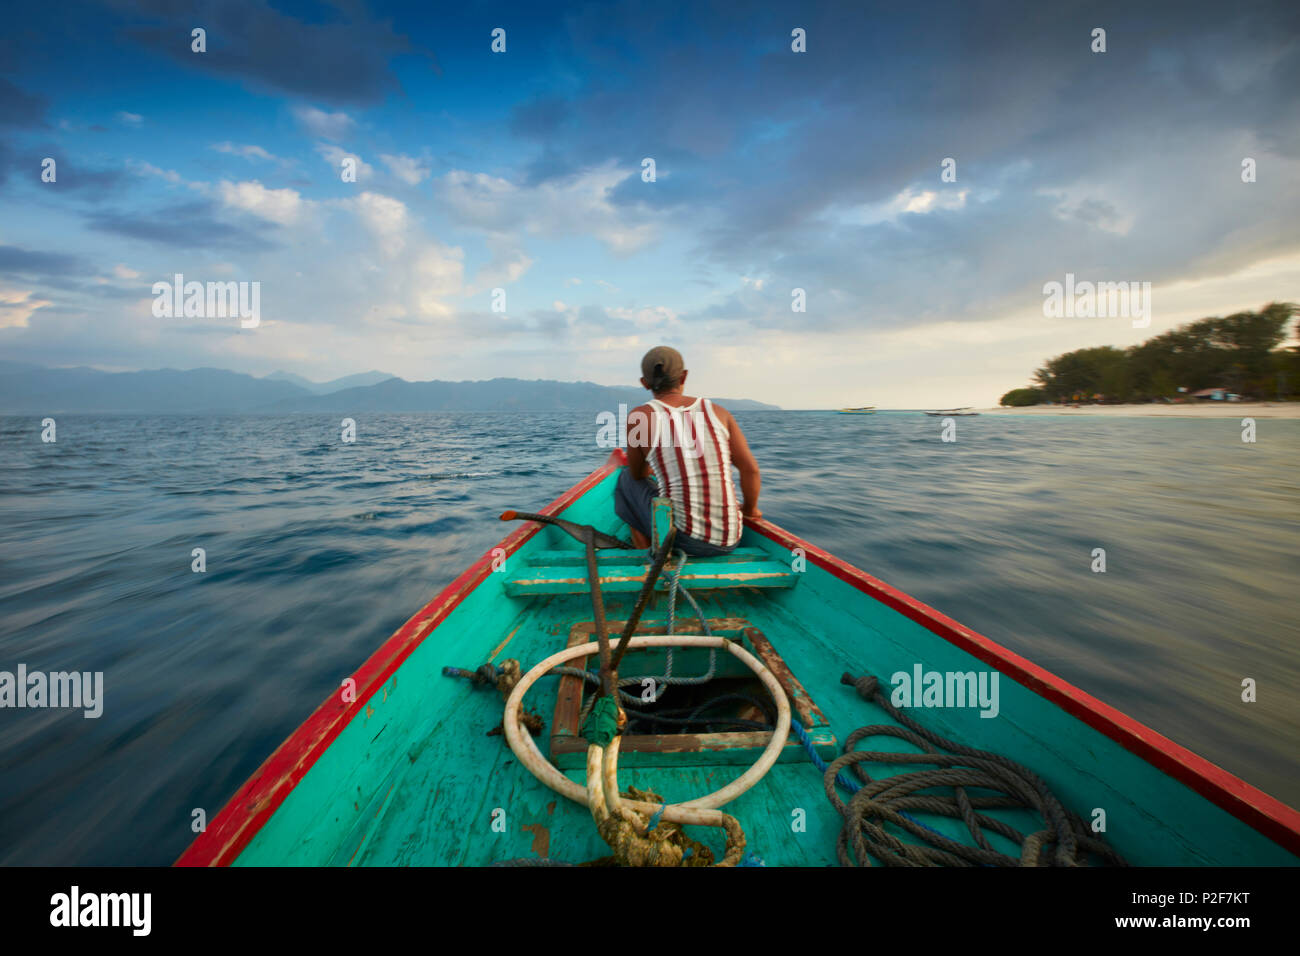 Fisherman, Boat Trip between the Islands, Gili Trawangan, Lombok, Indonesia - Stock Image